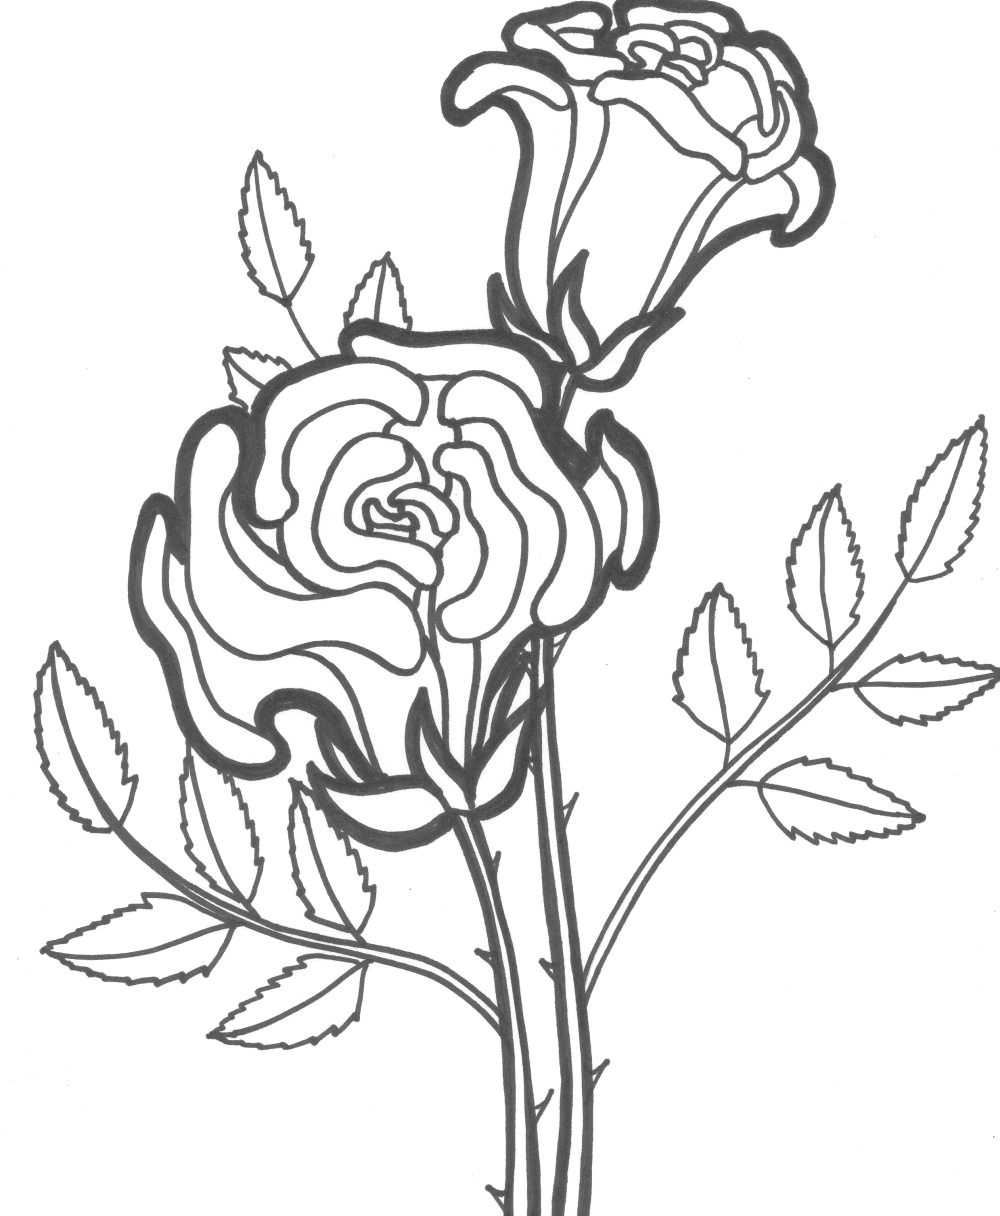 a coloring page of a rose free printable roses coloring pages for kids of page coloring rose a a